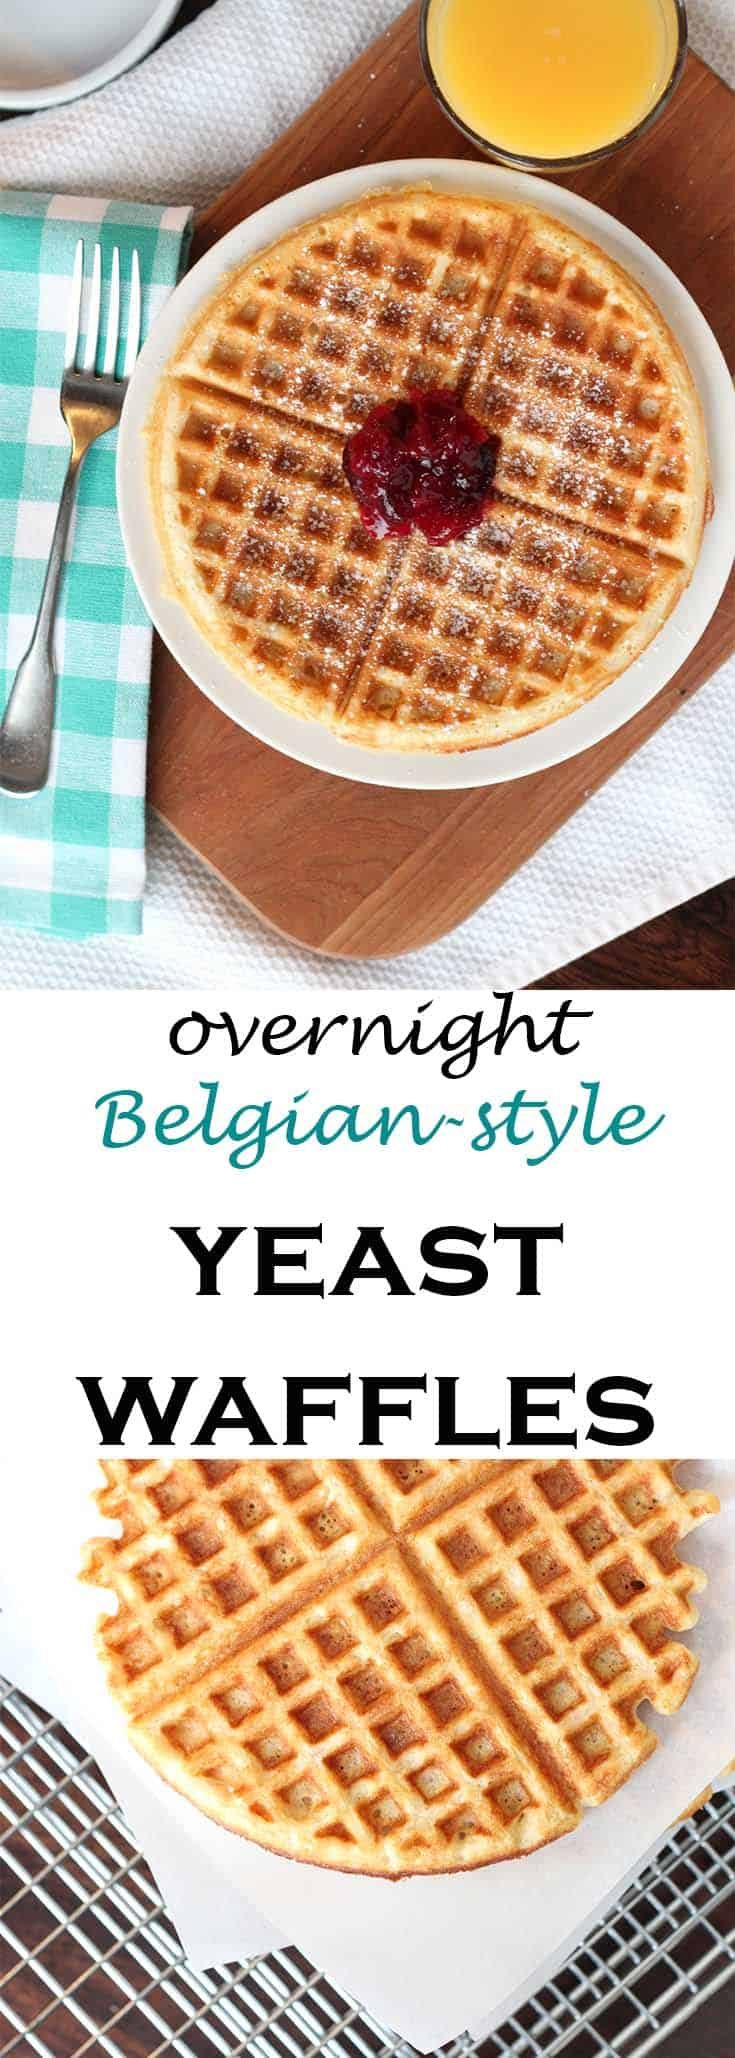 This dough recipe from King Arthur Flour is one of the easier yeast doughs you'll come across for overnight Belgian style yeast waffles. Make the full batch and freeze the extras. The leftovers toast up beautifully. #abakershouse #waffles #homemade #yeast #belgian #belgianwaffles #breakfast